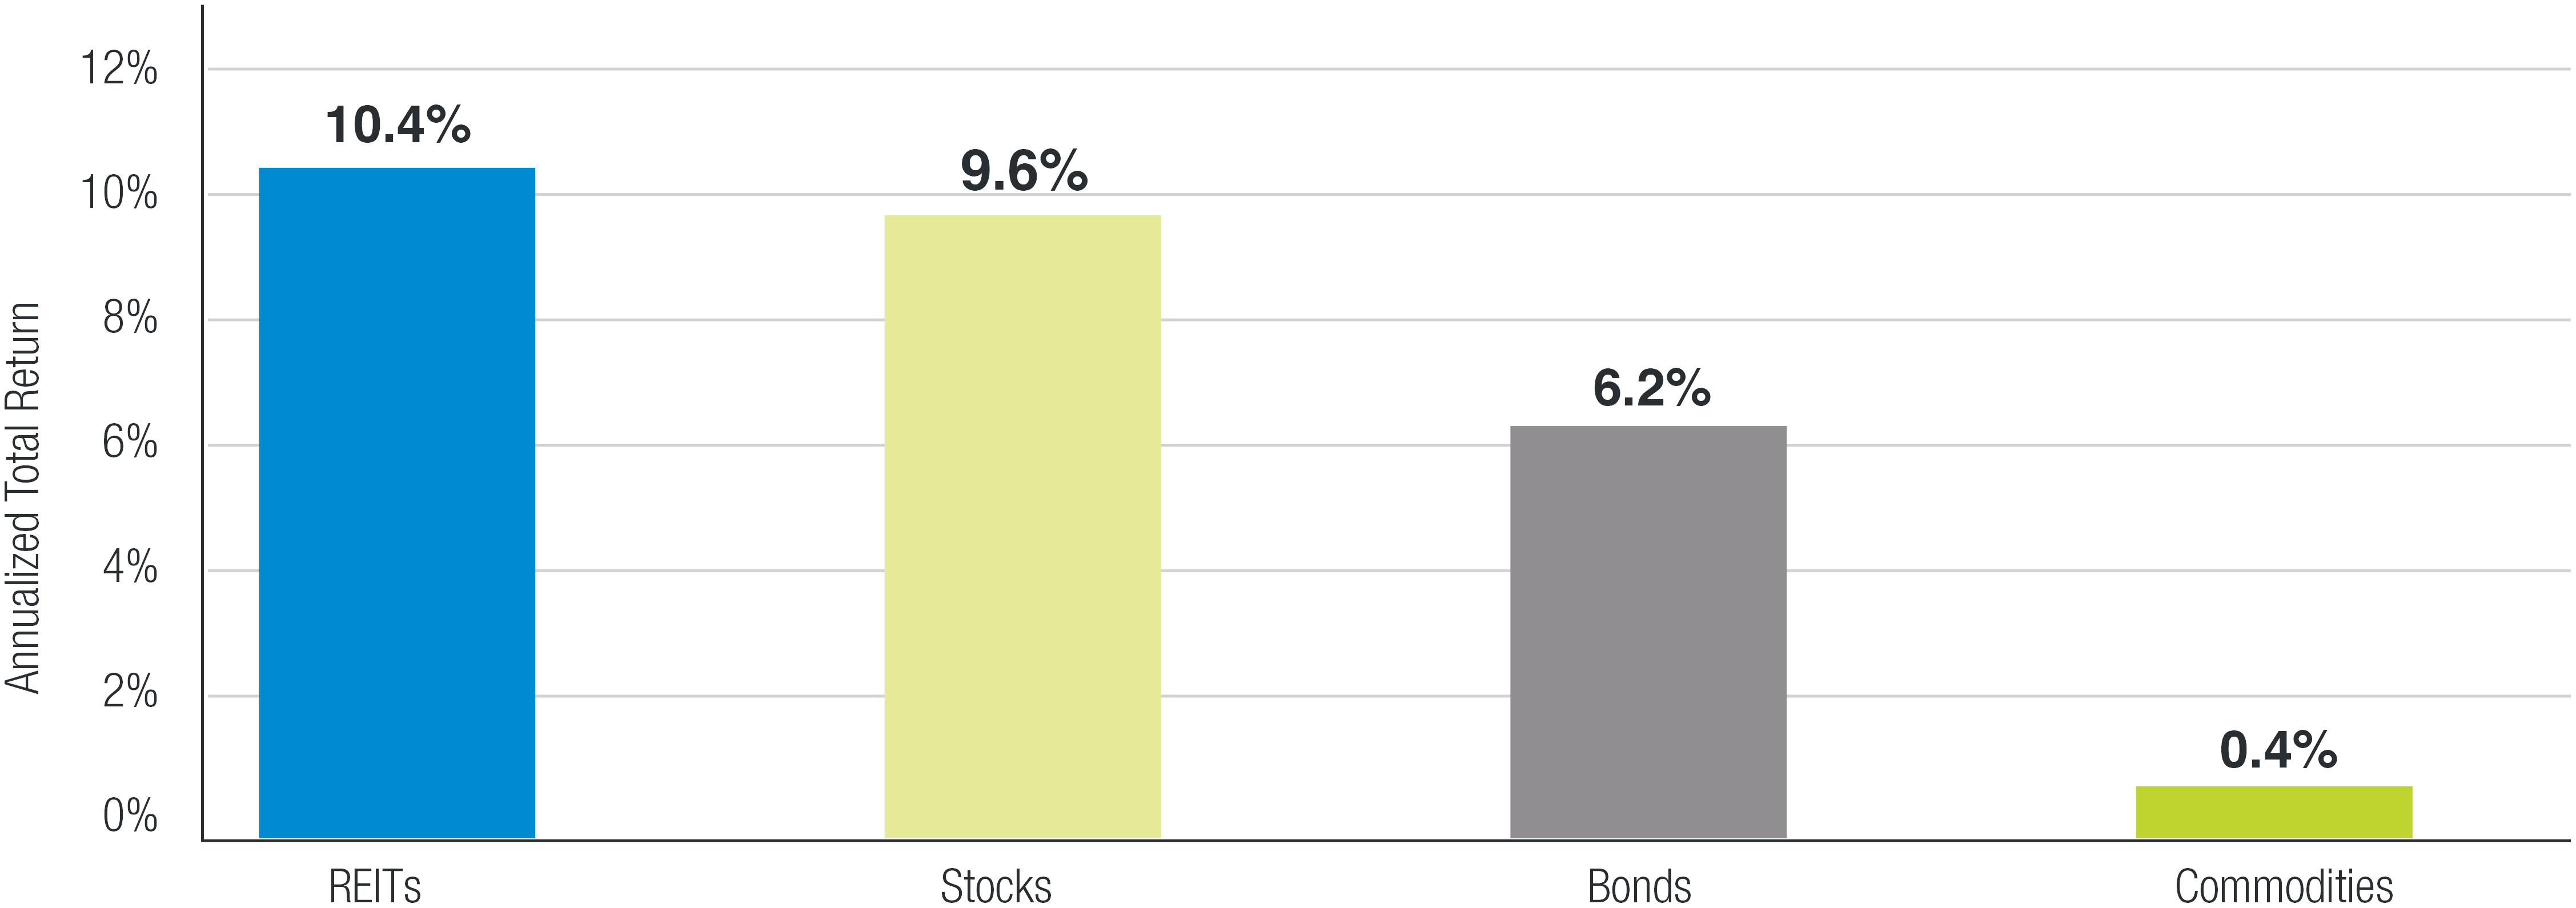 REITs outperform other major asset classes